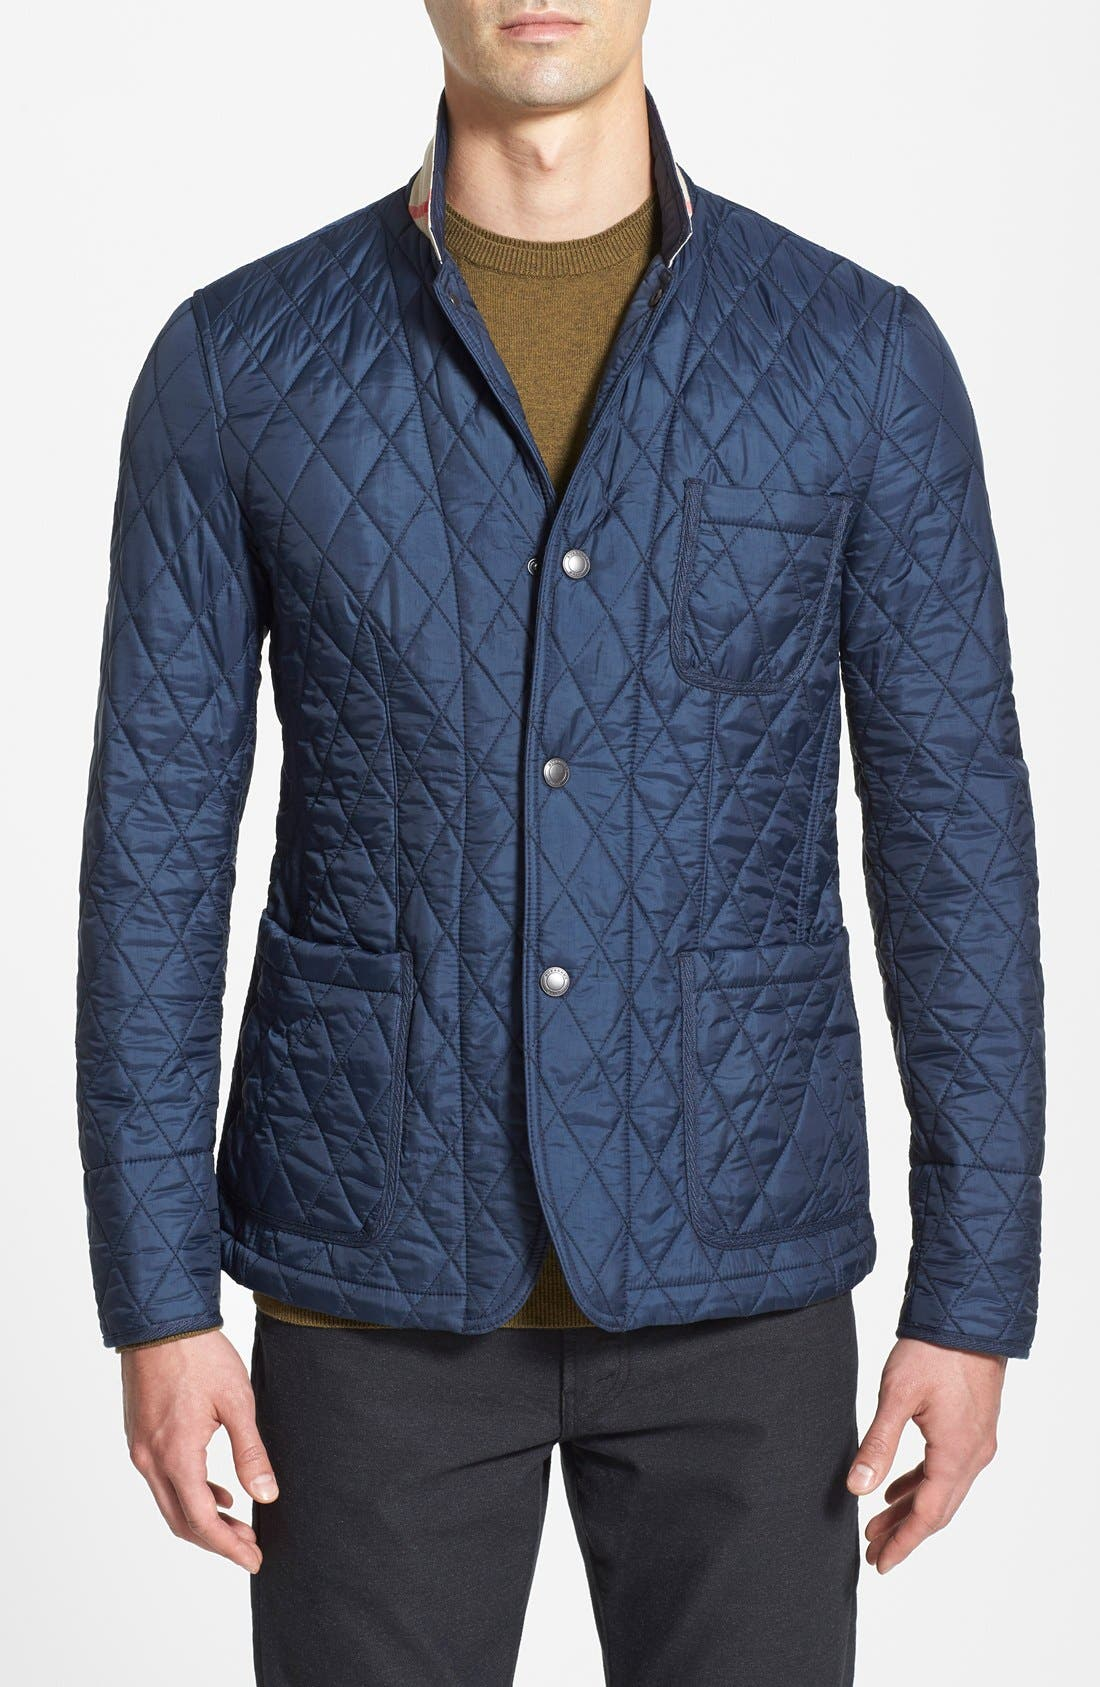 'Howe' Quilted Sport Jacket,                             Main thumbnail 1, color,                             410